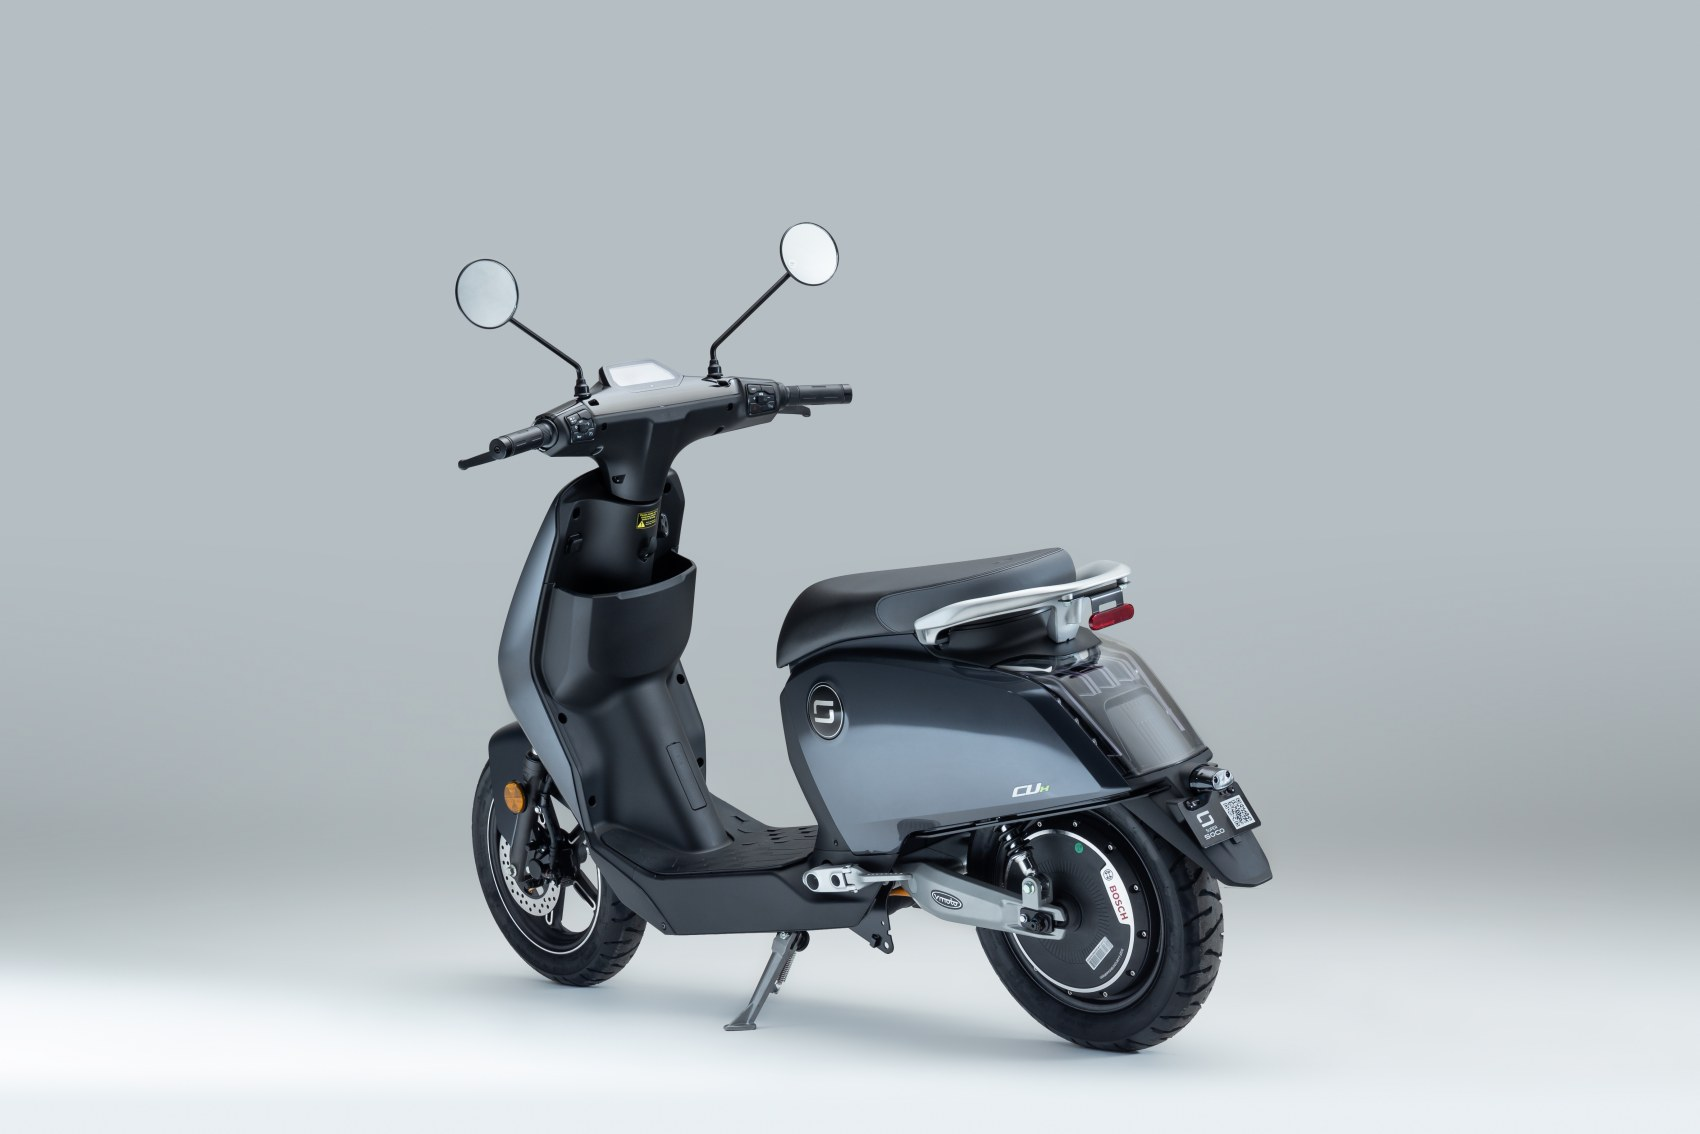 Super Soco CUx electric scooter rear three quarter image